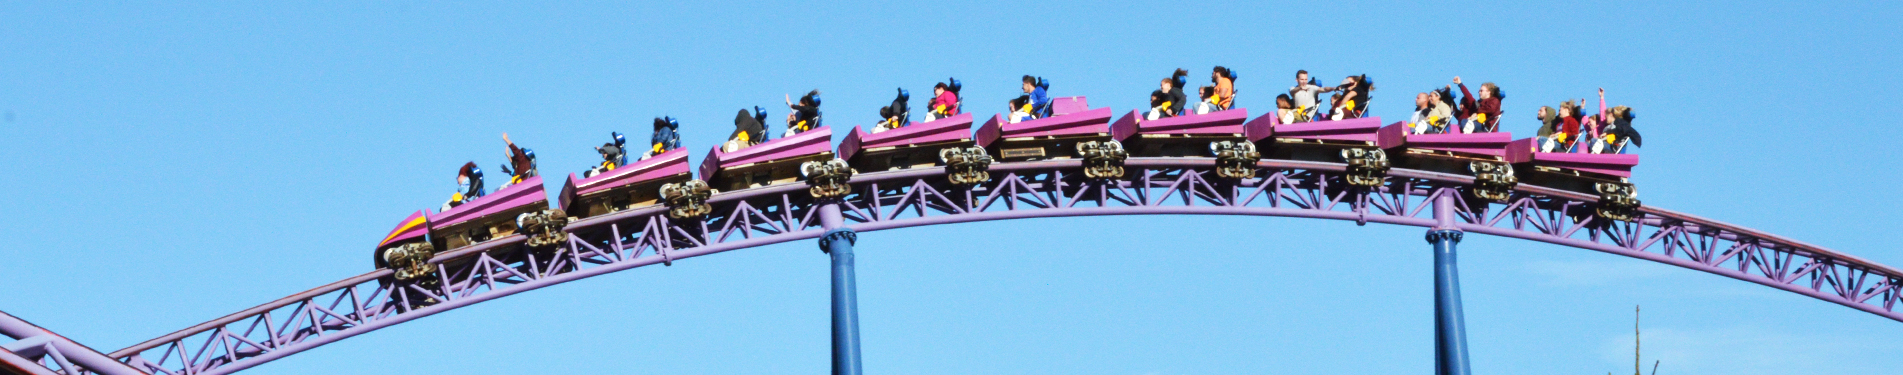 Superman the Ride (Six Flags New England)